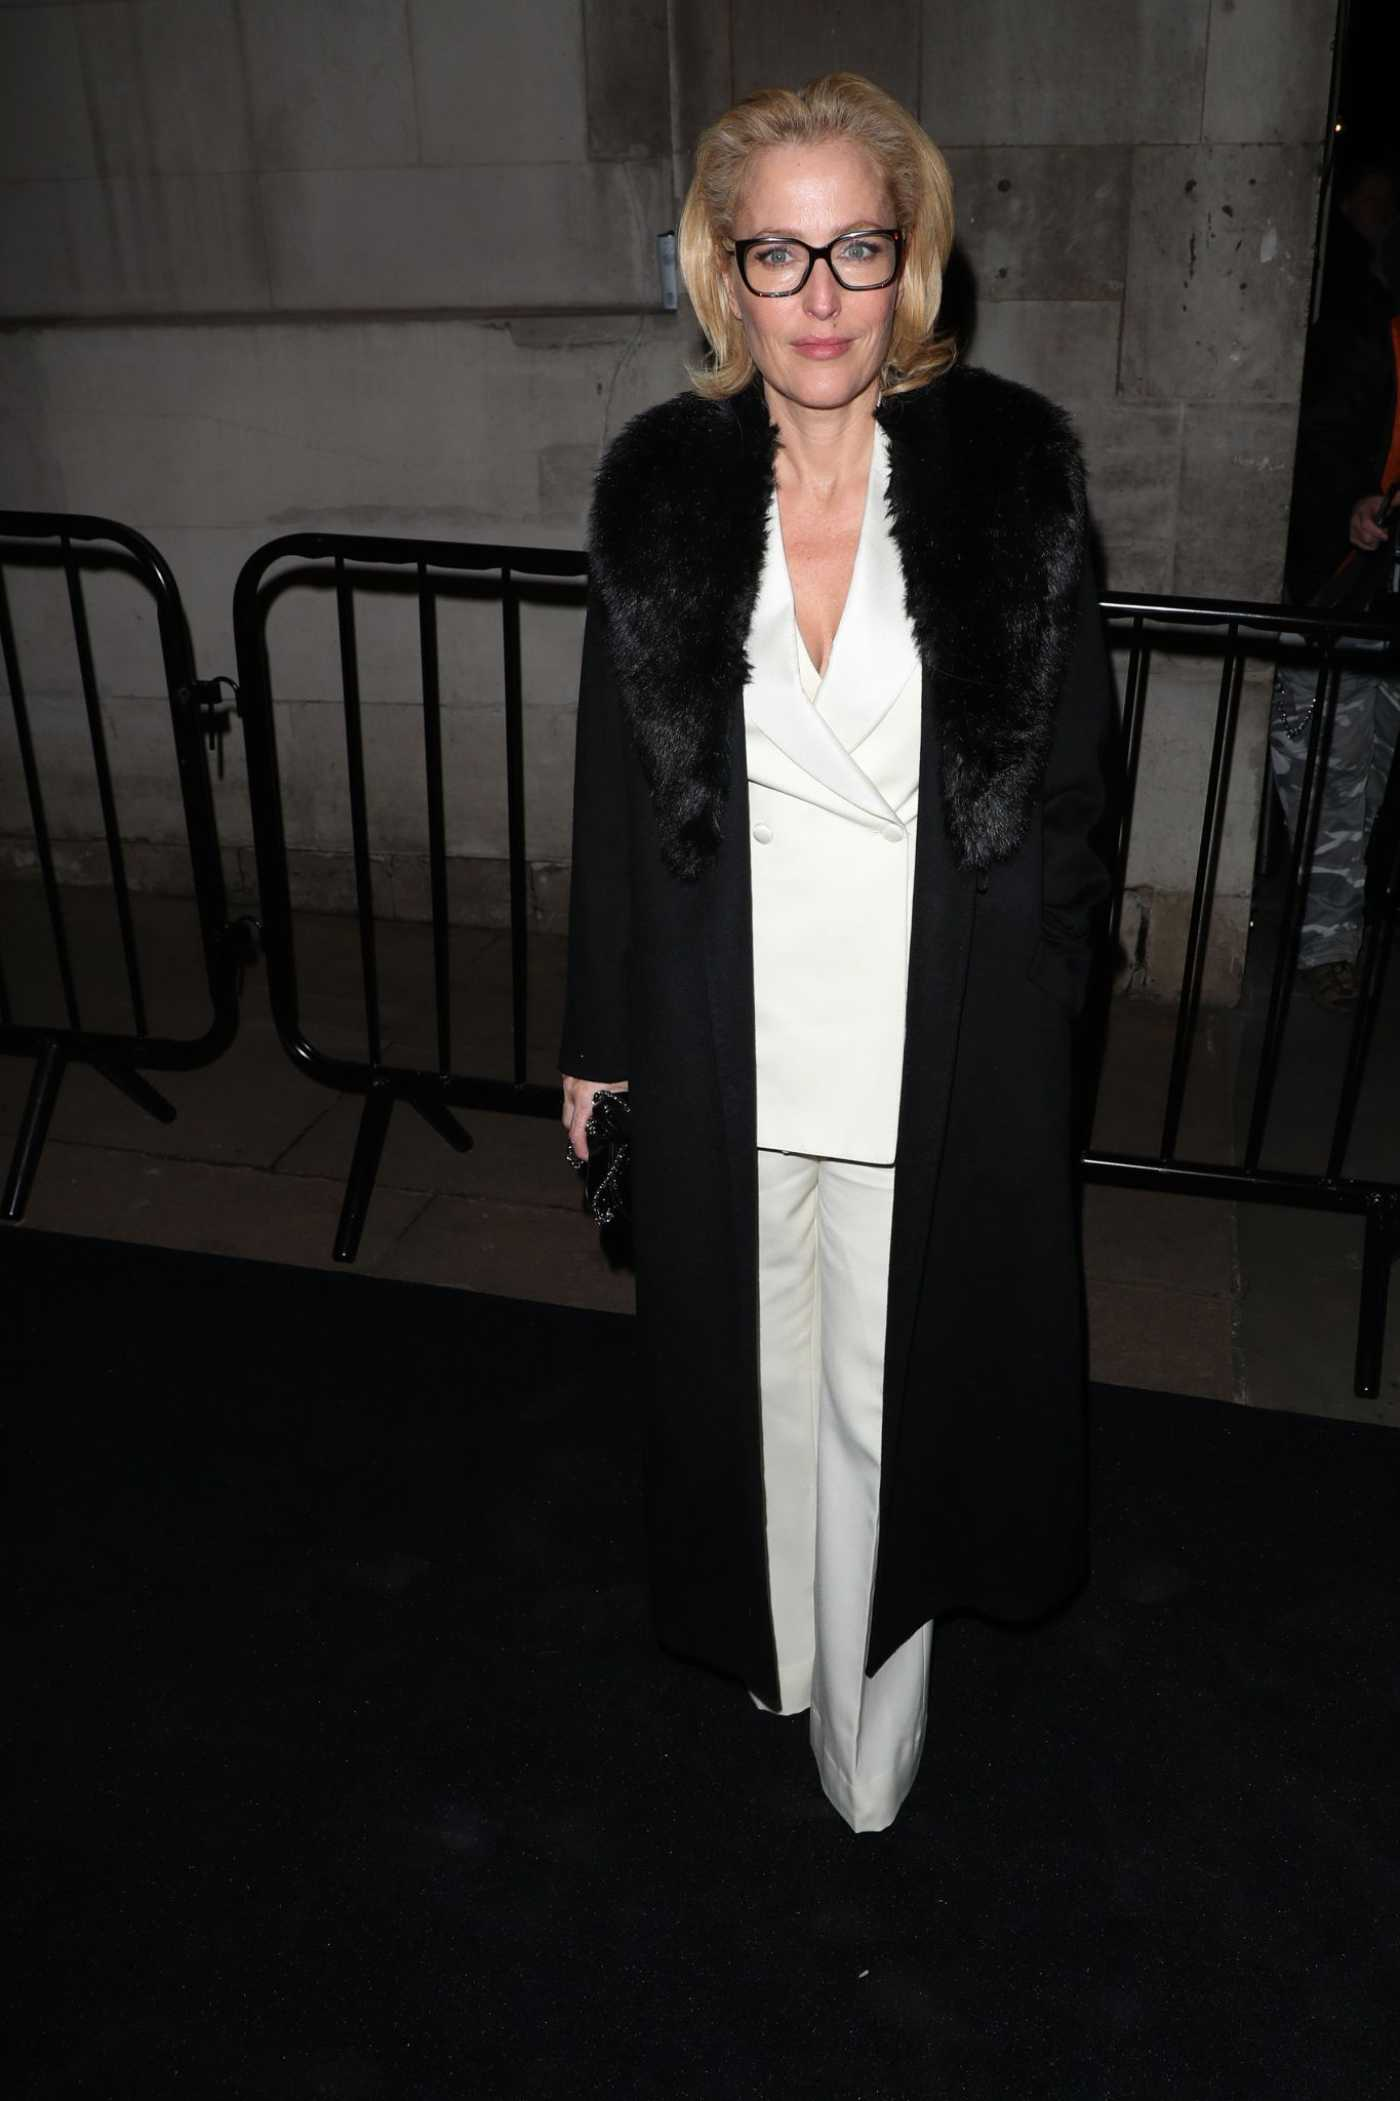 Gillian Anderson Attends 2020 Charles Finch and Chanel Pre-Bafta Party in London 02/01/2020